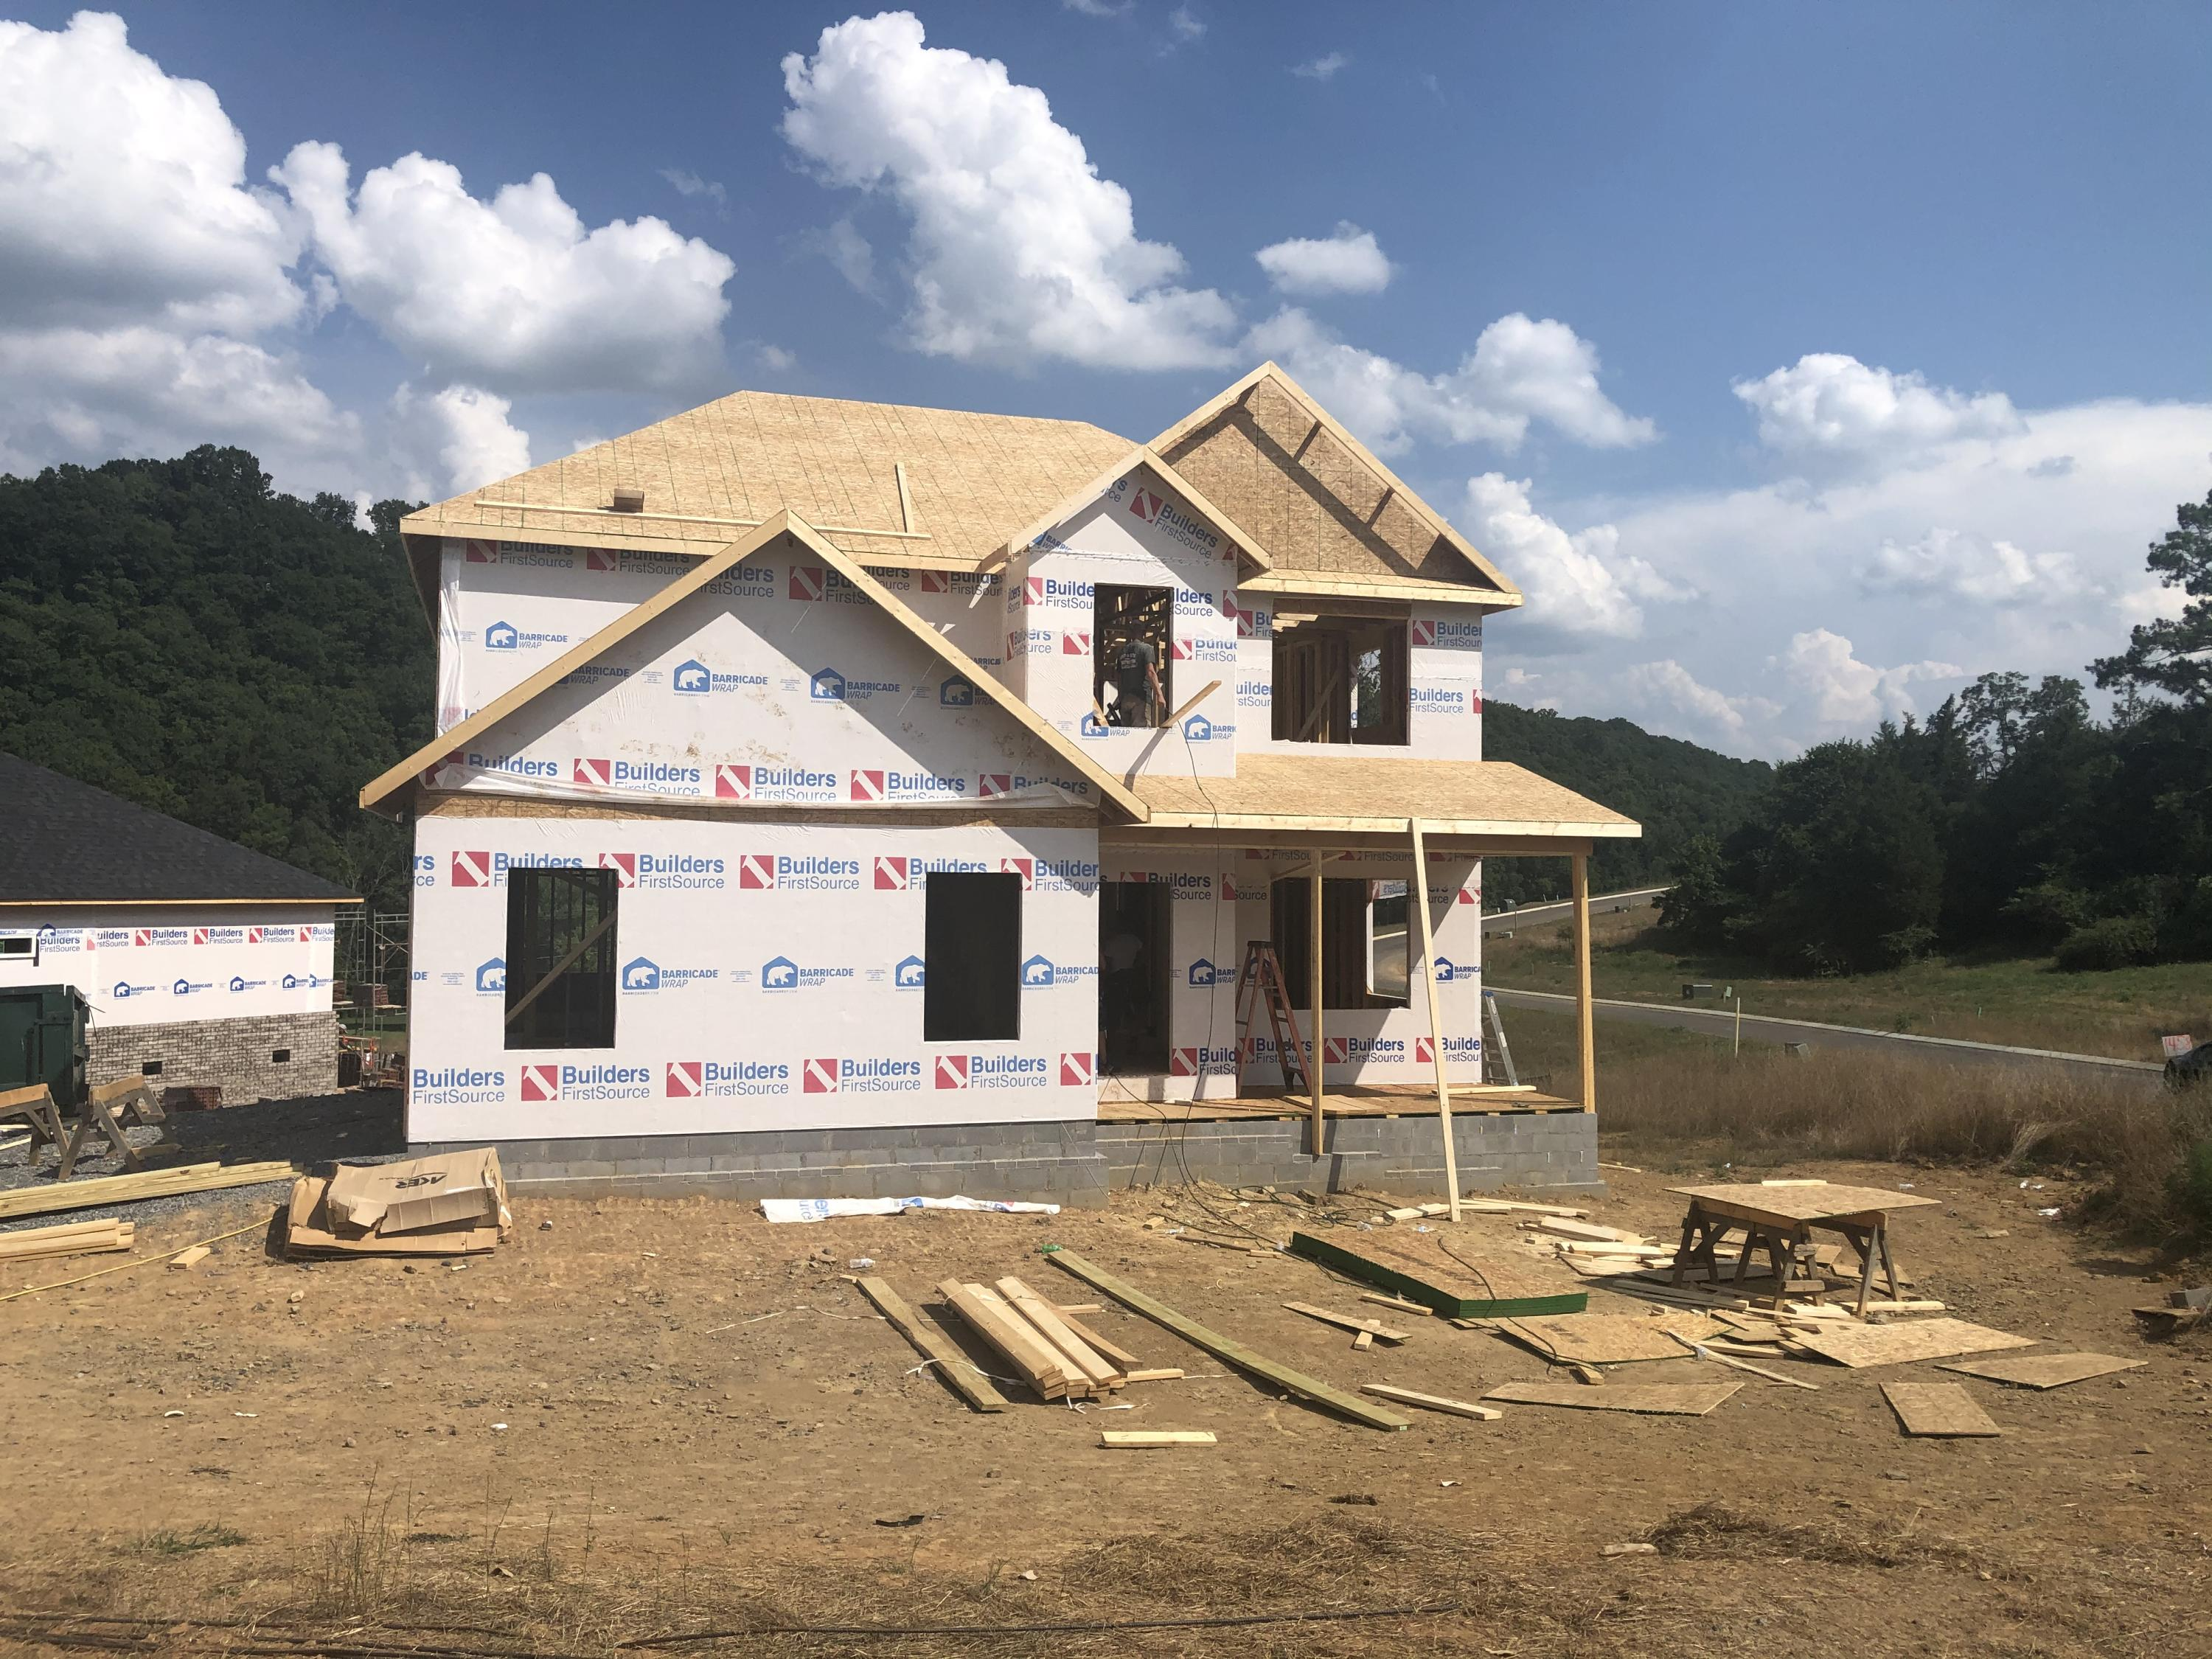 3309 Cottage Green, Kingsport, Tennessee 37664, 4 Bedrooms Bedrooms, ,3 BathroomsBathrooms,Single Family,For Sale,3309 Cottage Green,2,9909141